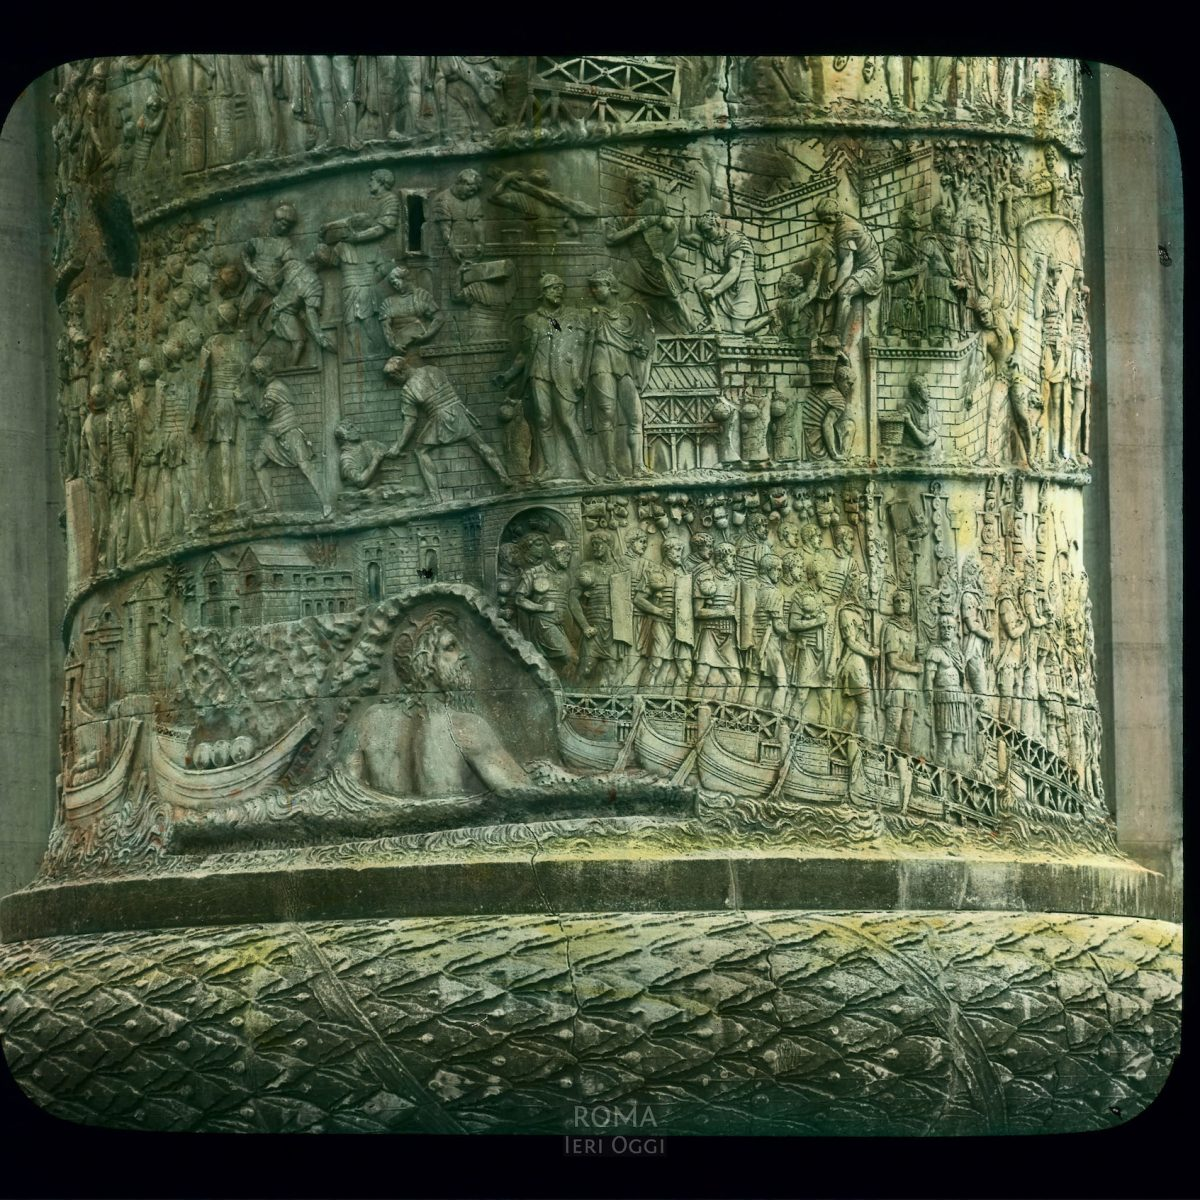 Rome. Trajan's Forum: Trajan's Column detail, base showing scenes of Dacian campaign View in tinted lantern slide, ca. 1919-1938. The column dates from 113 C.E.